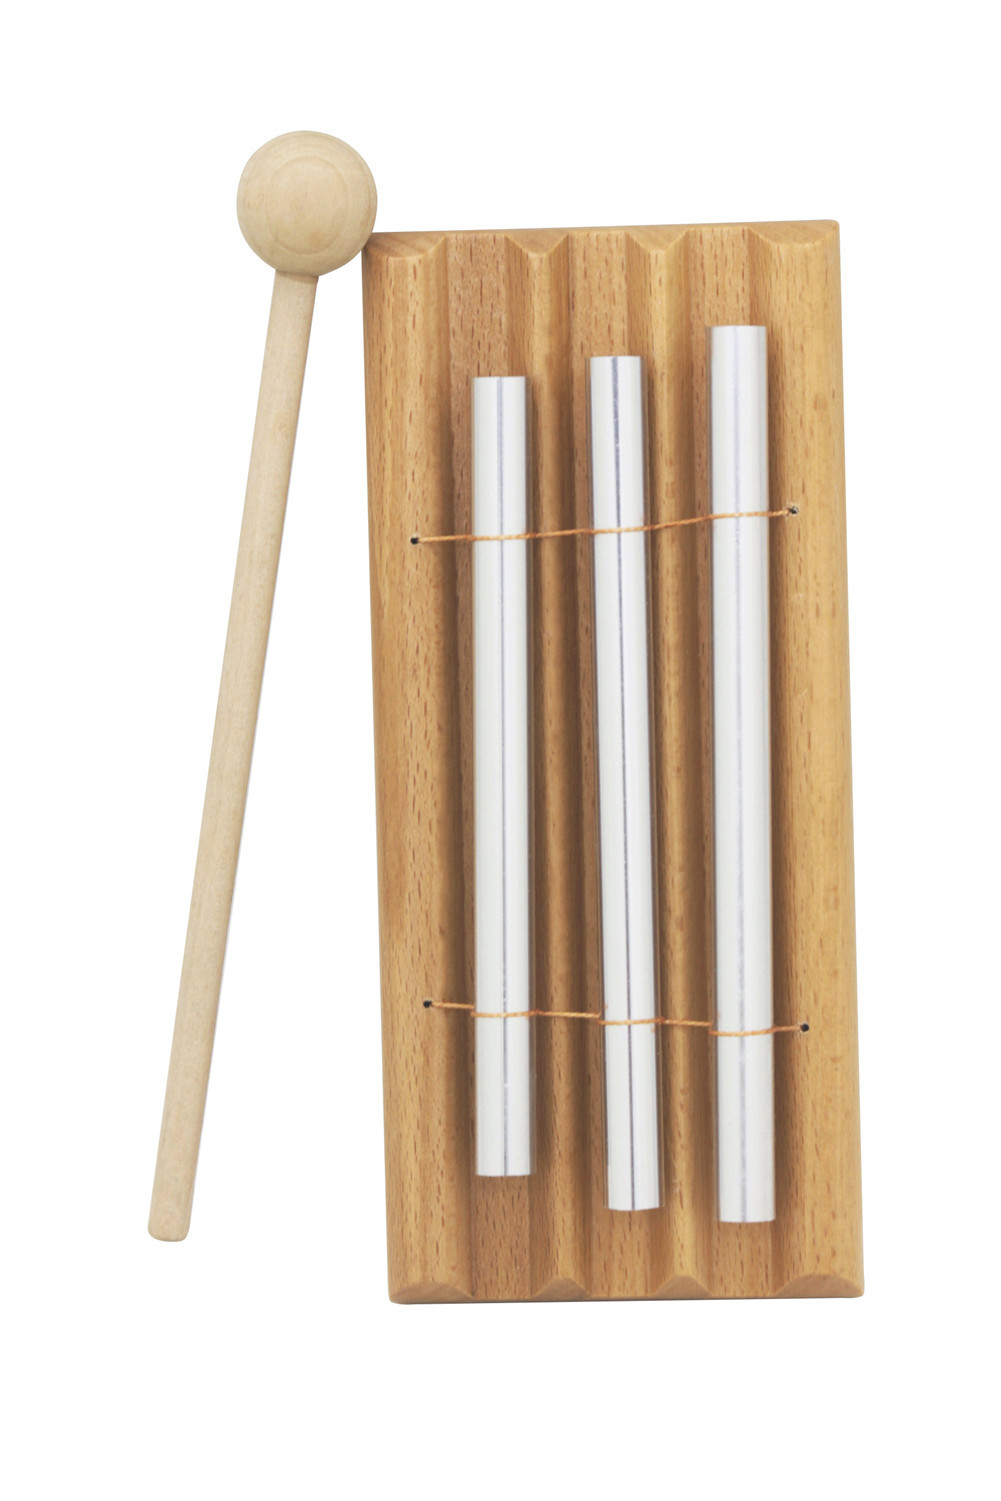 Energy Chime Three Tone with Mallet Exquisite Music Toy Percussion Instrument Three-tone